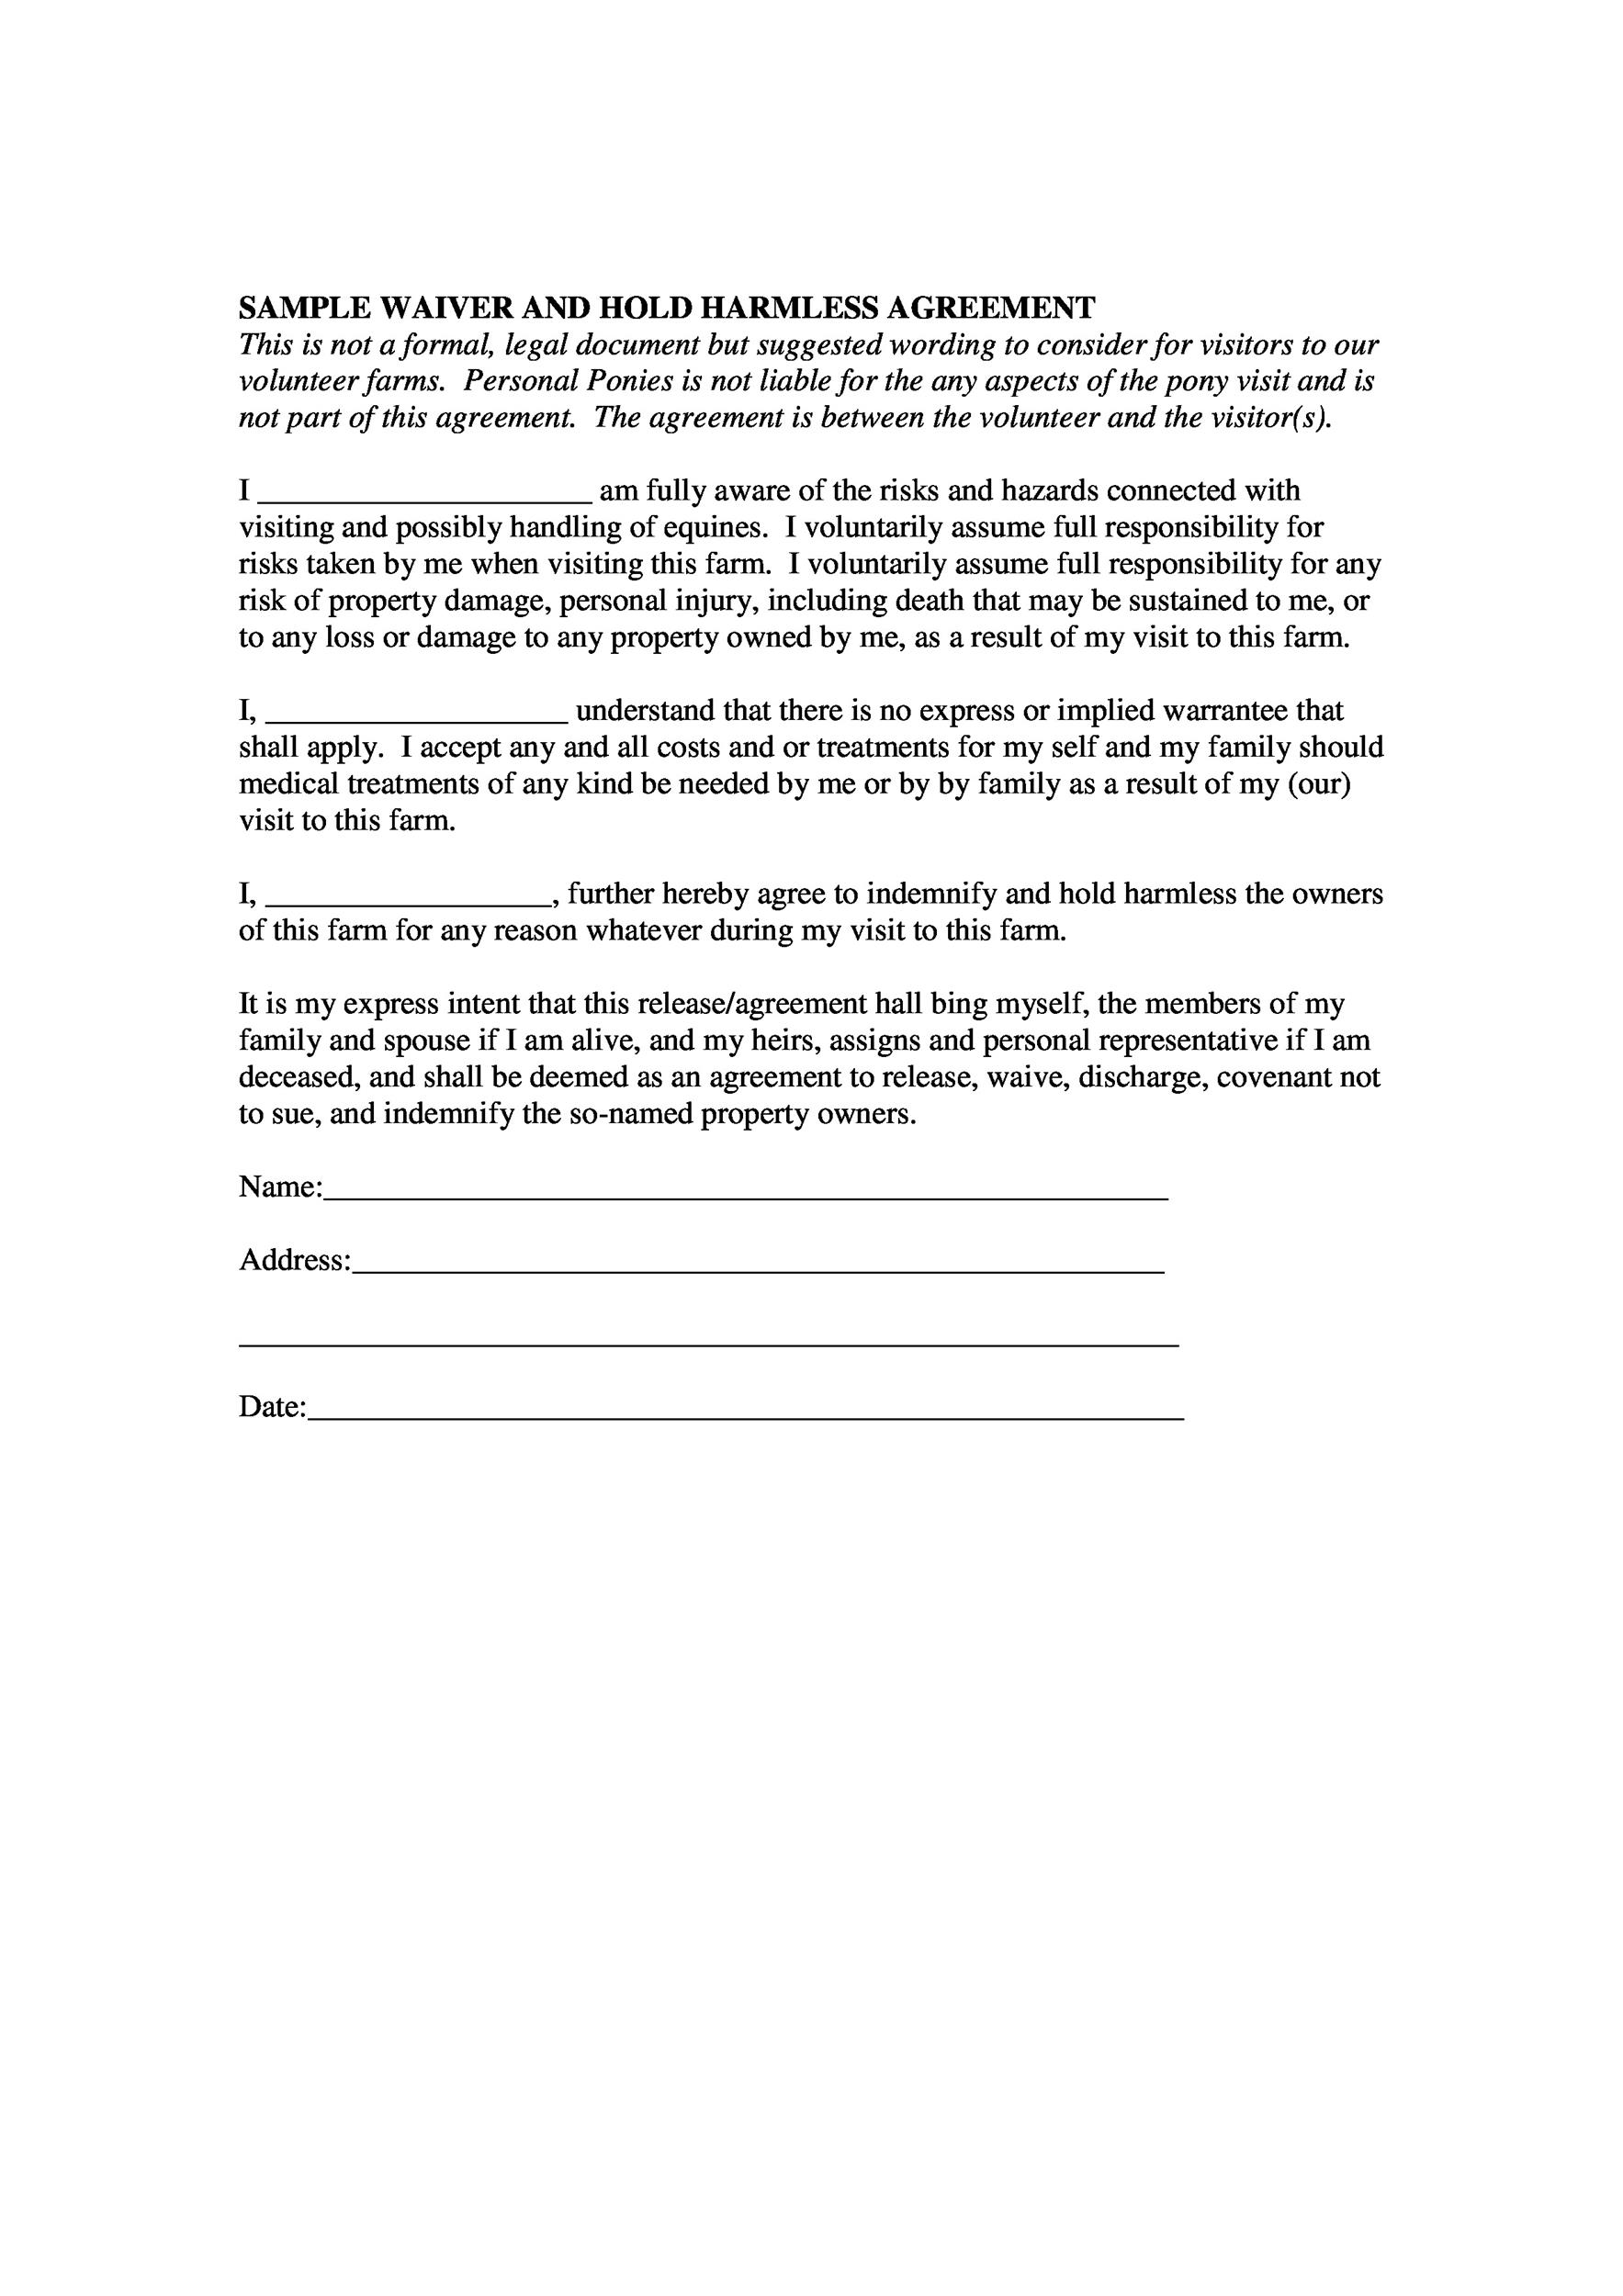 Hold Harmless Agreement Template 14